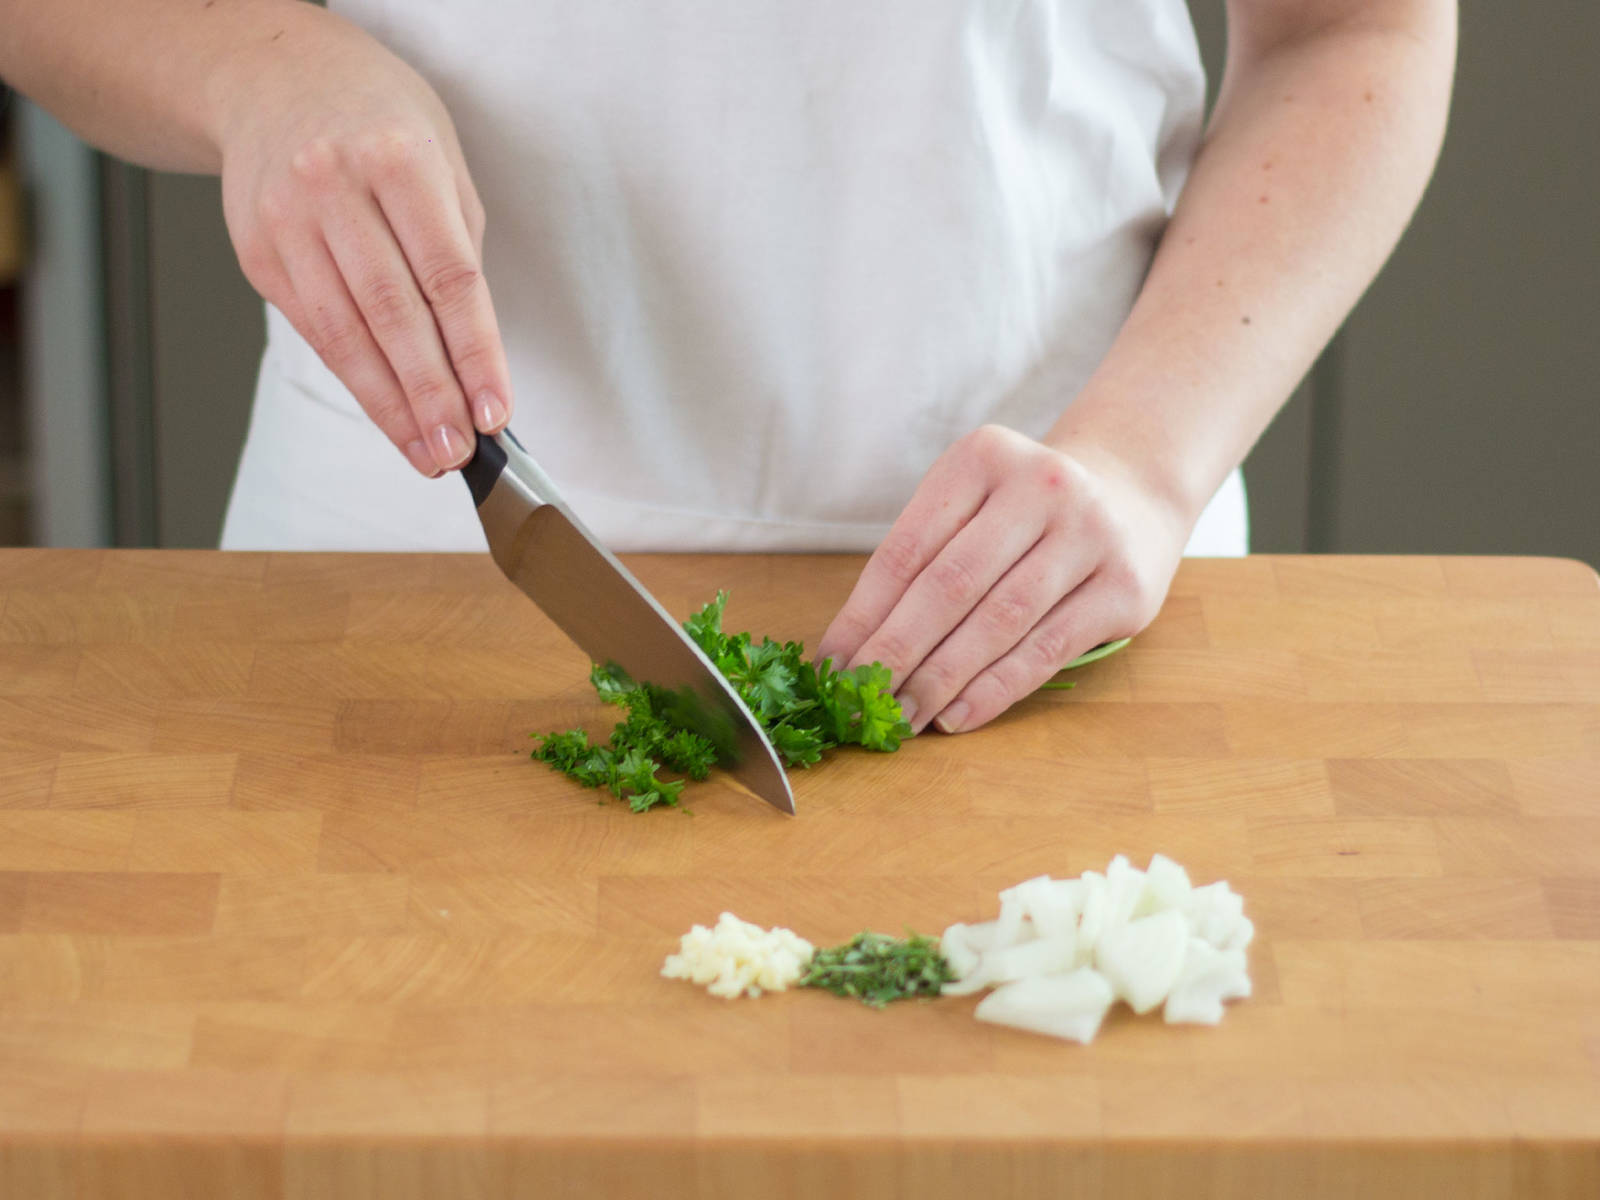 Preheat oven to 150°C/300°F. Coarsely chop onions. Finely mince garlic. Finely chop rosemary and thyme as well as the parsley.